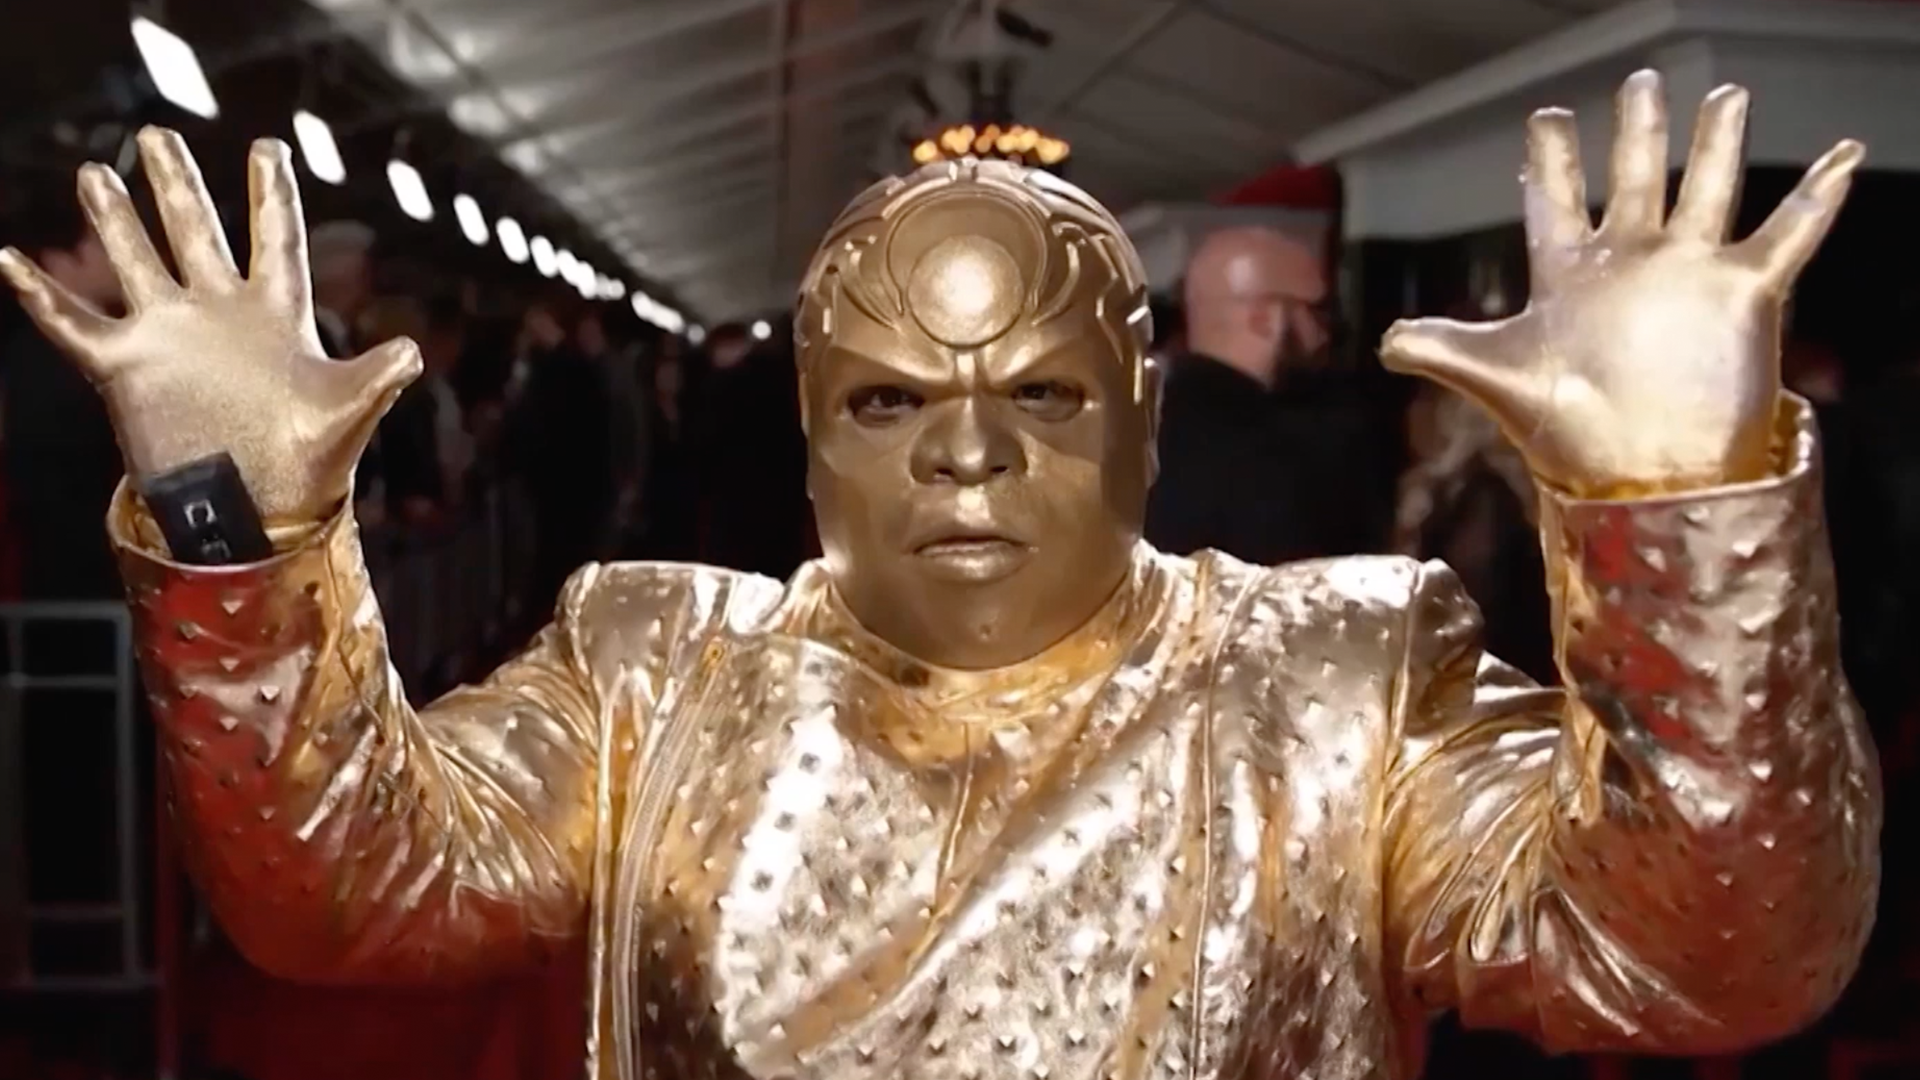 Cee Lo Green S Grammy Outfit Is Comedy Gold Vice Tv